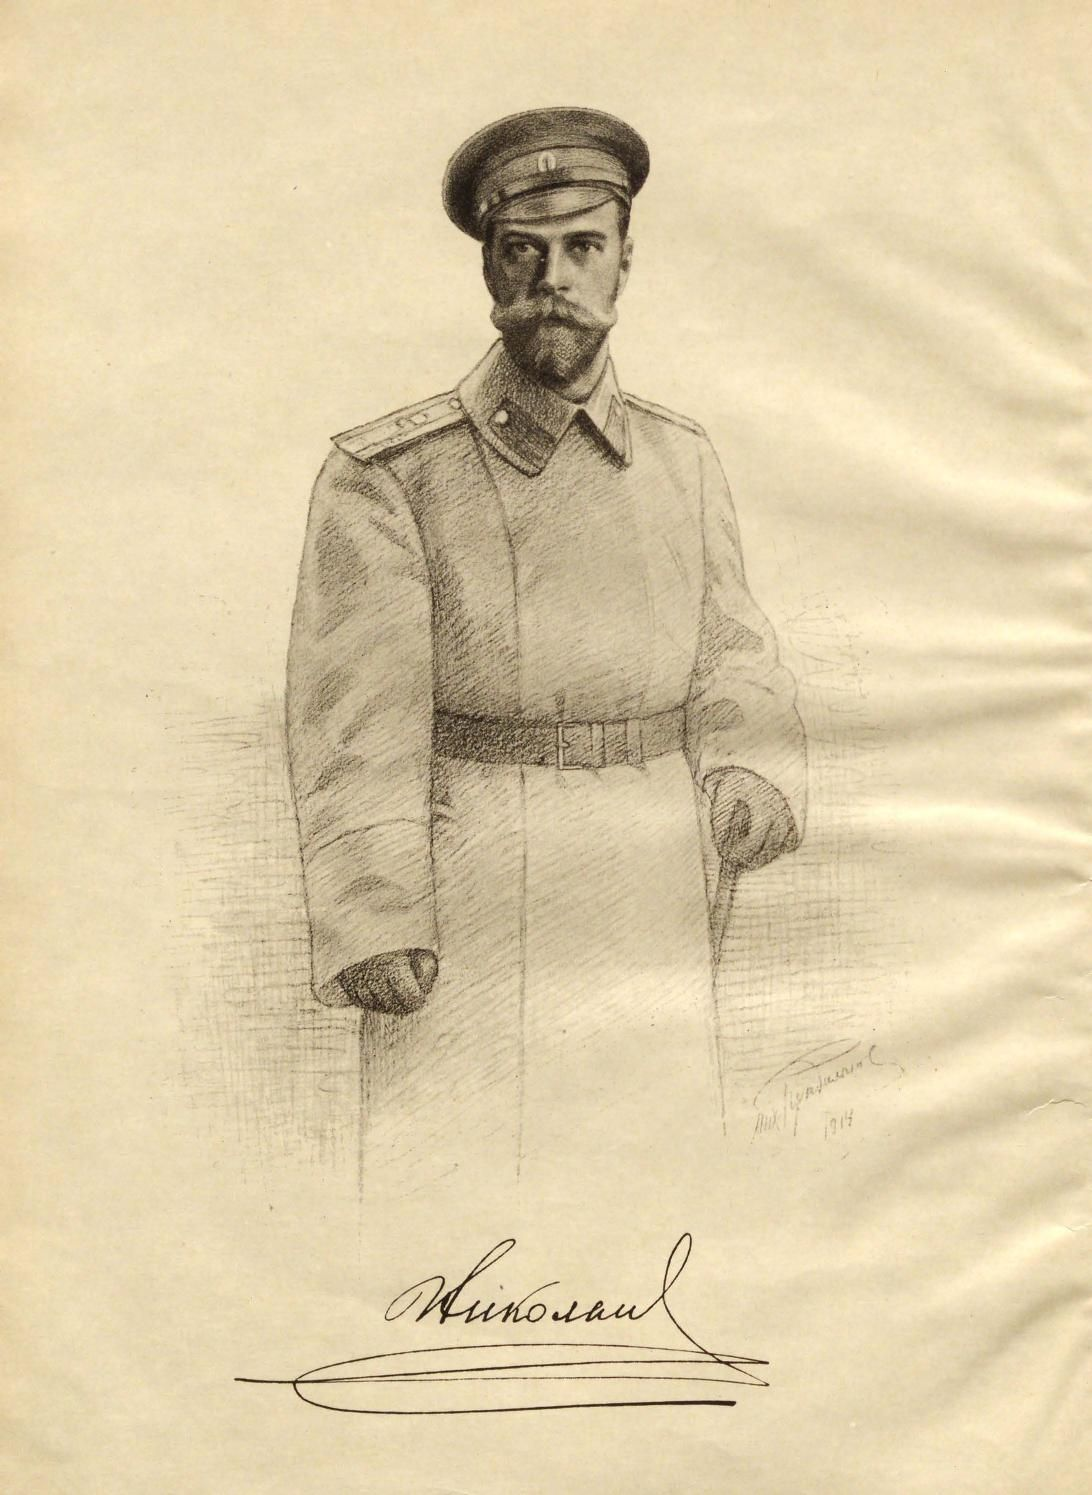 Pencil drawing of Nicholas from inside cover of military journal - 1914.